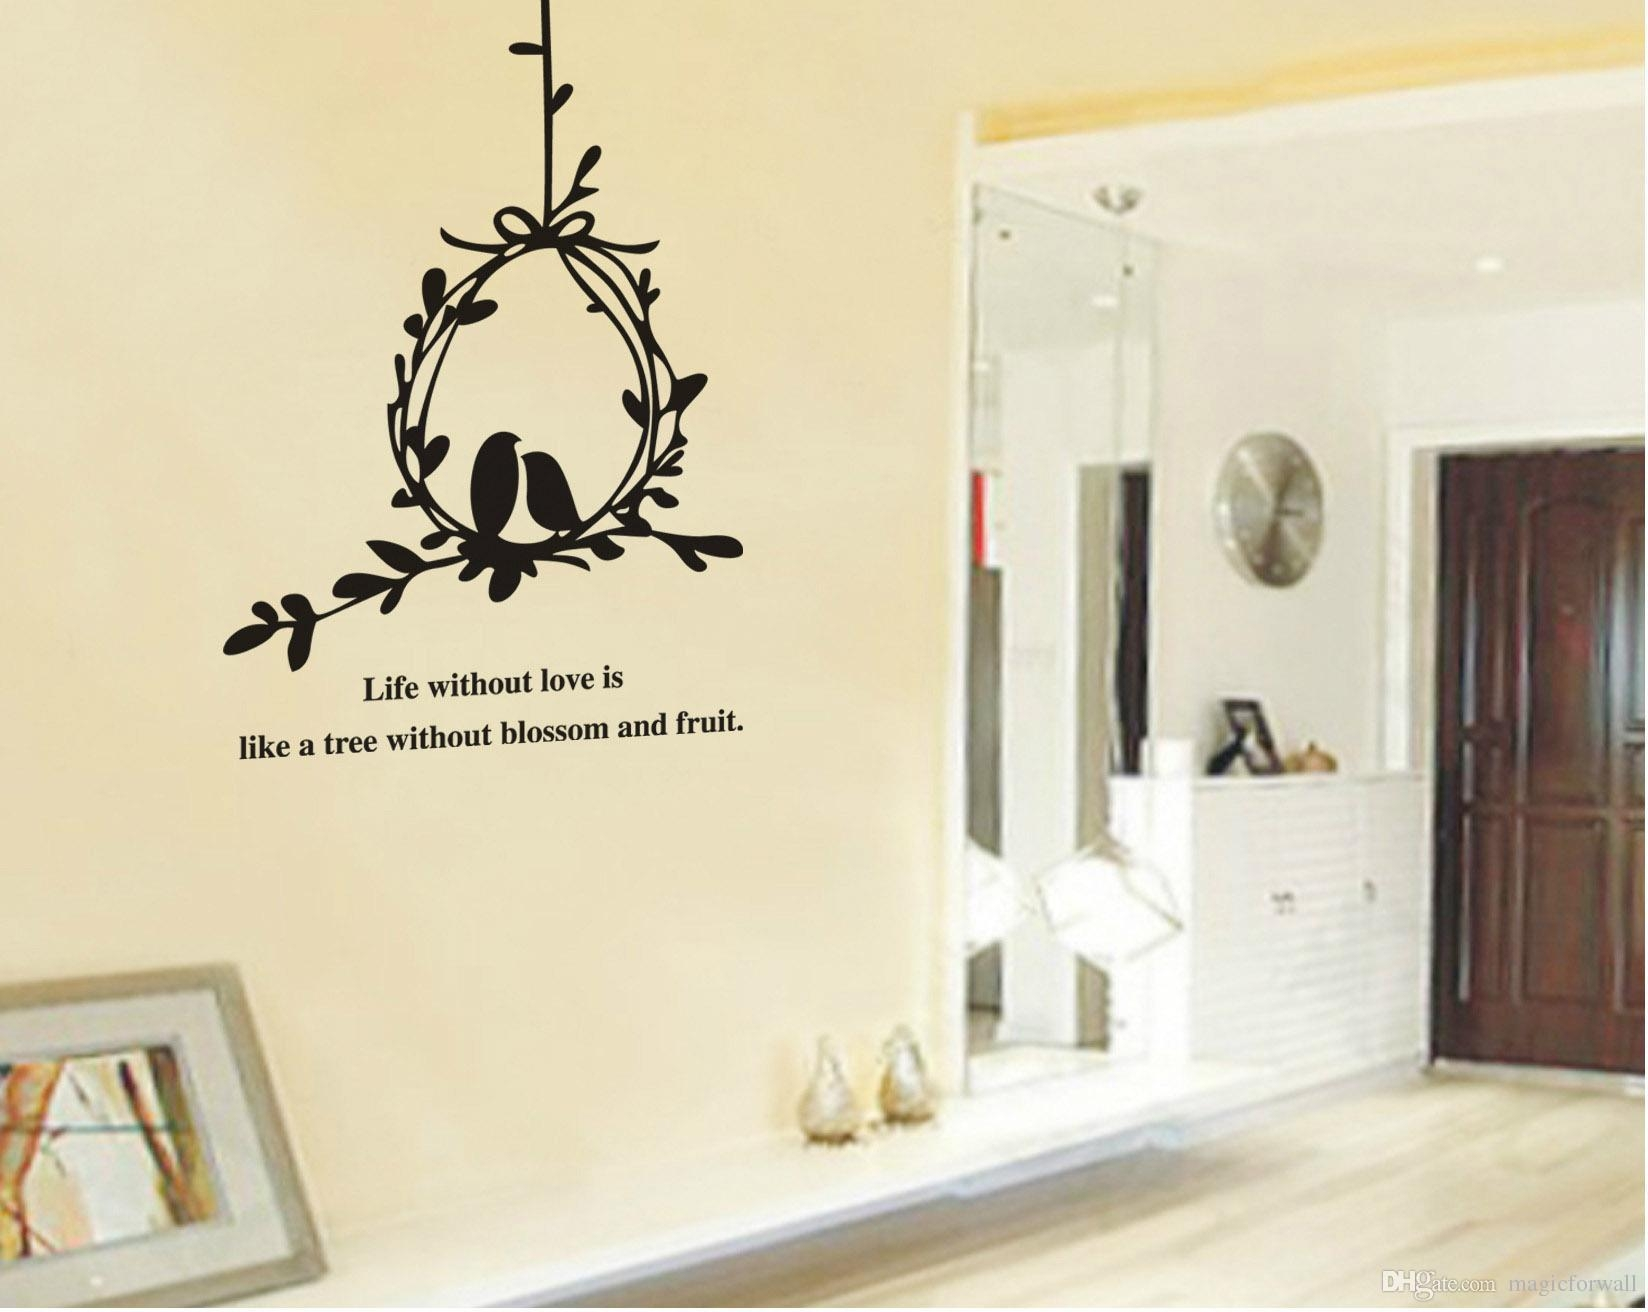 Tree Of Life Wall Sticker | Home Design With Tree Of Life Wall Art Stickers (View 7 of 20)